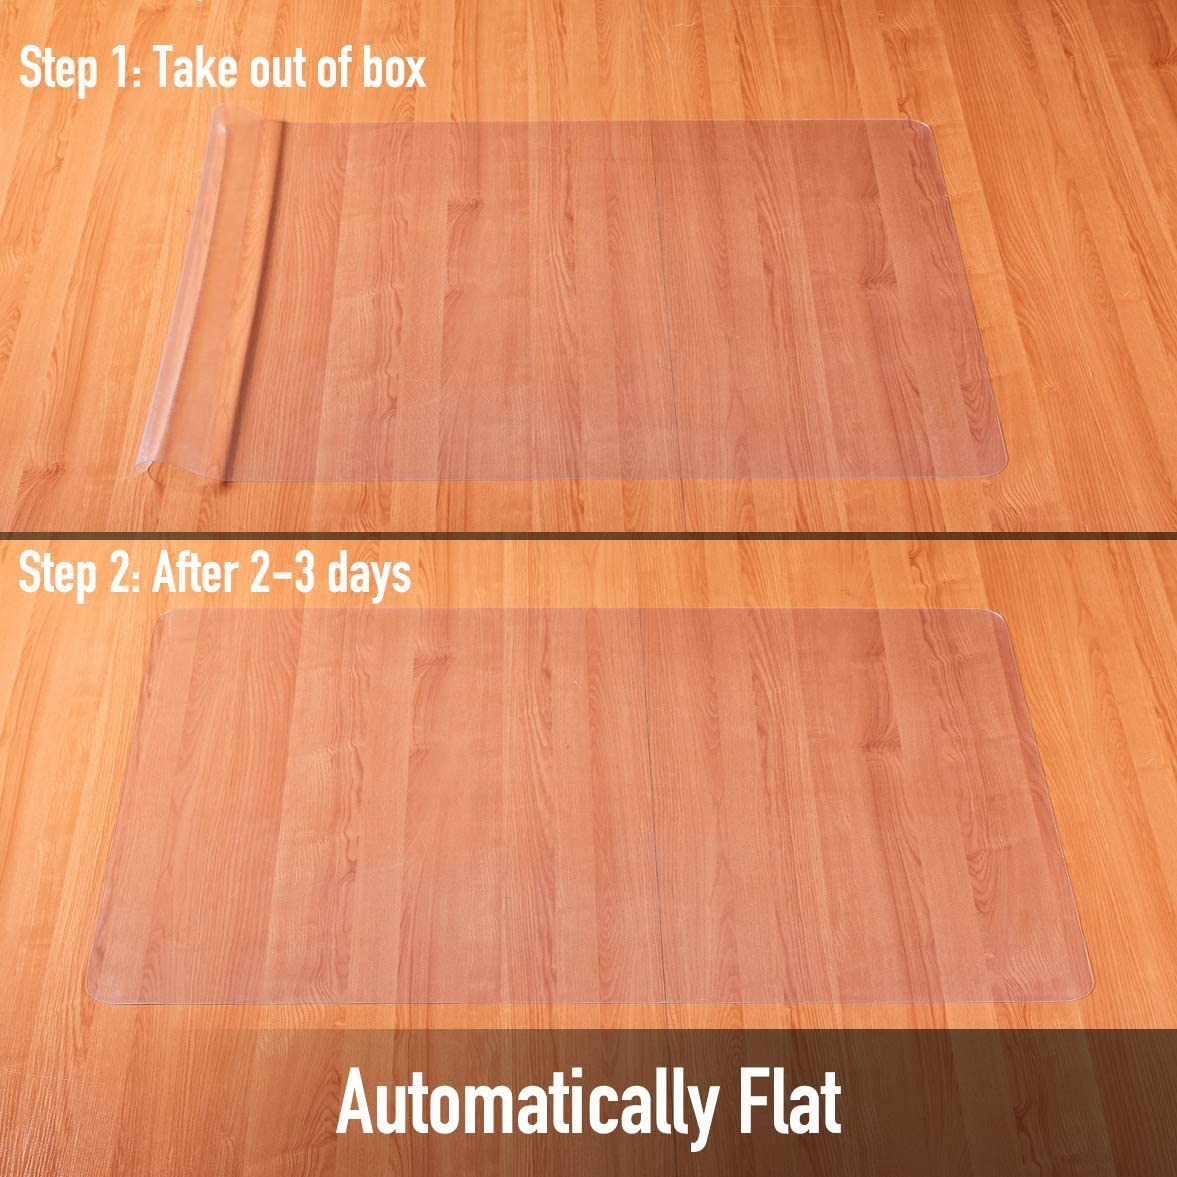 Floor Protectors for Office Chairs Office Mats for Rolling Chairs Office Chair Mat Office Mat Desk Chair Mat 35/×47-1mm Thick Chair Mat for Hardwood Floor